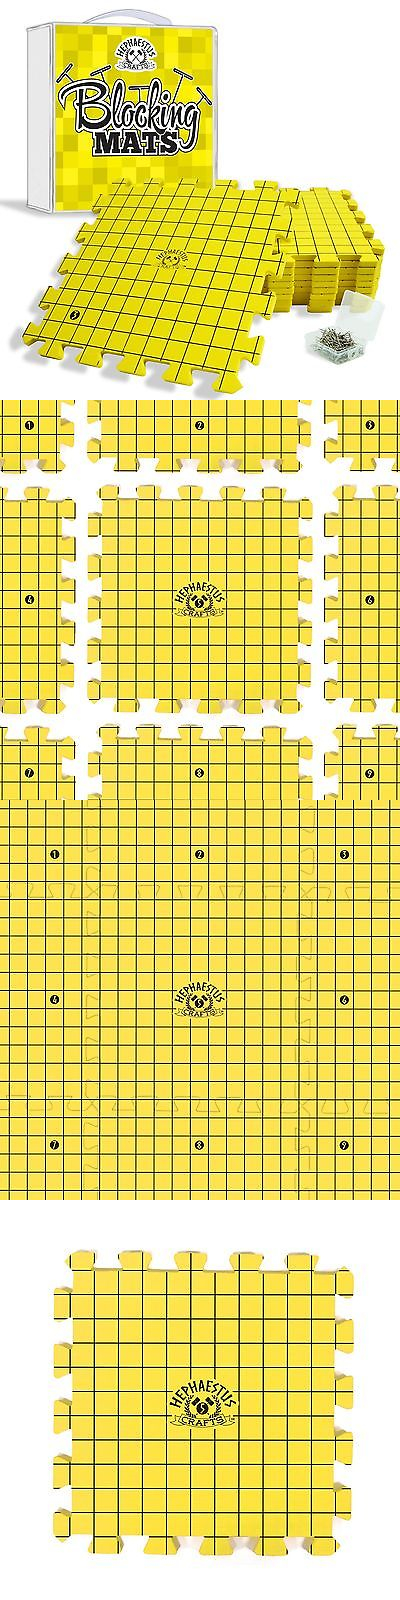 Notions and Tools 160708 Crafts Blocking Mats Knitting Boards Grids